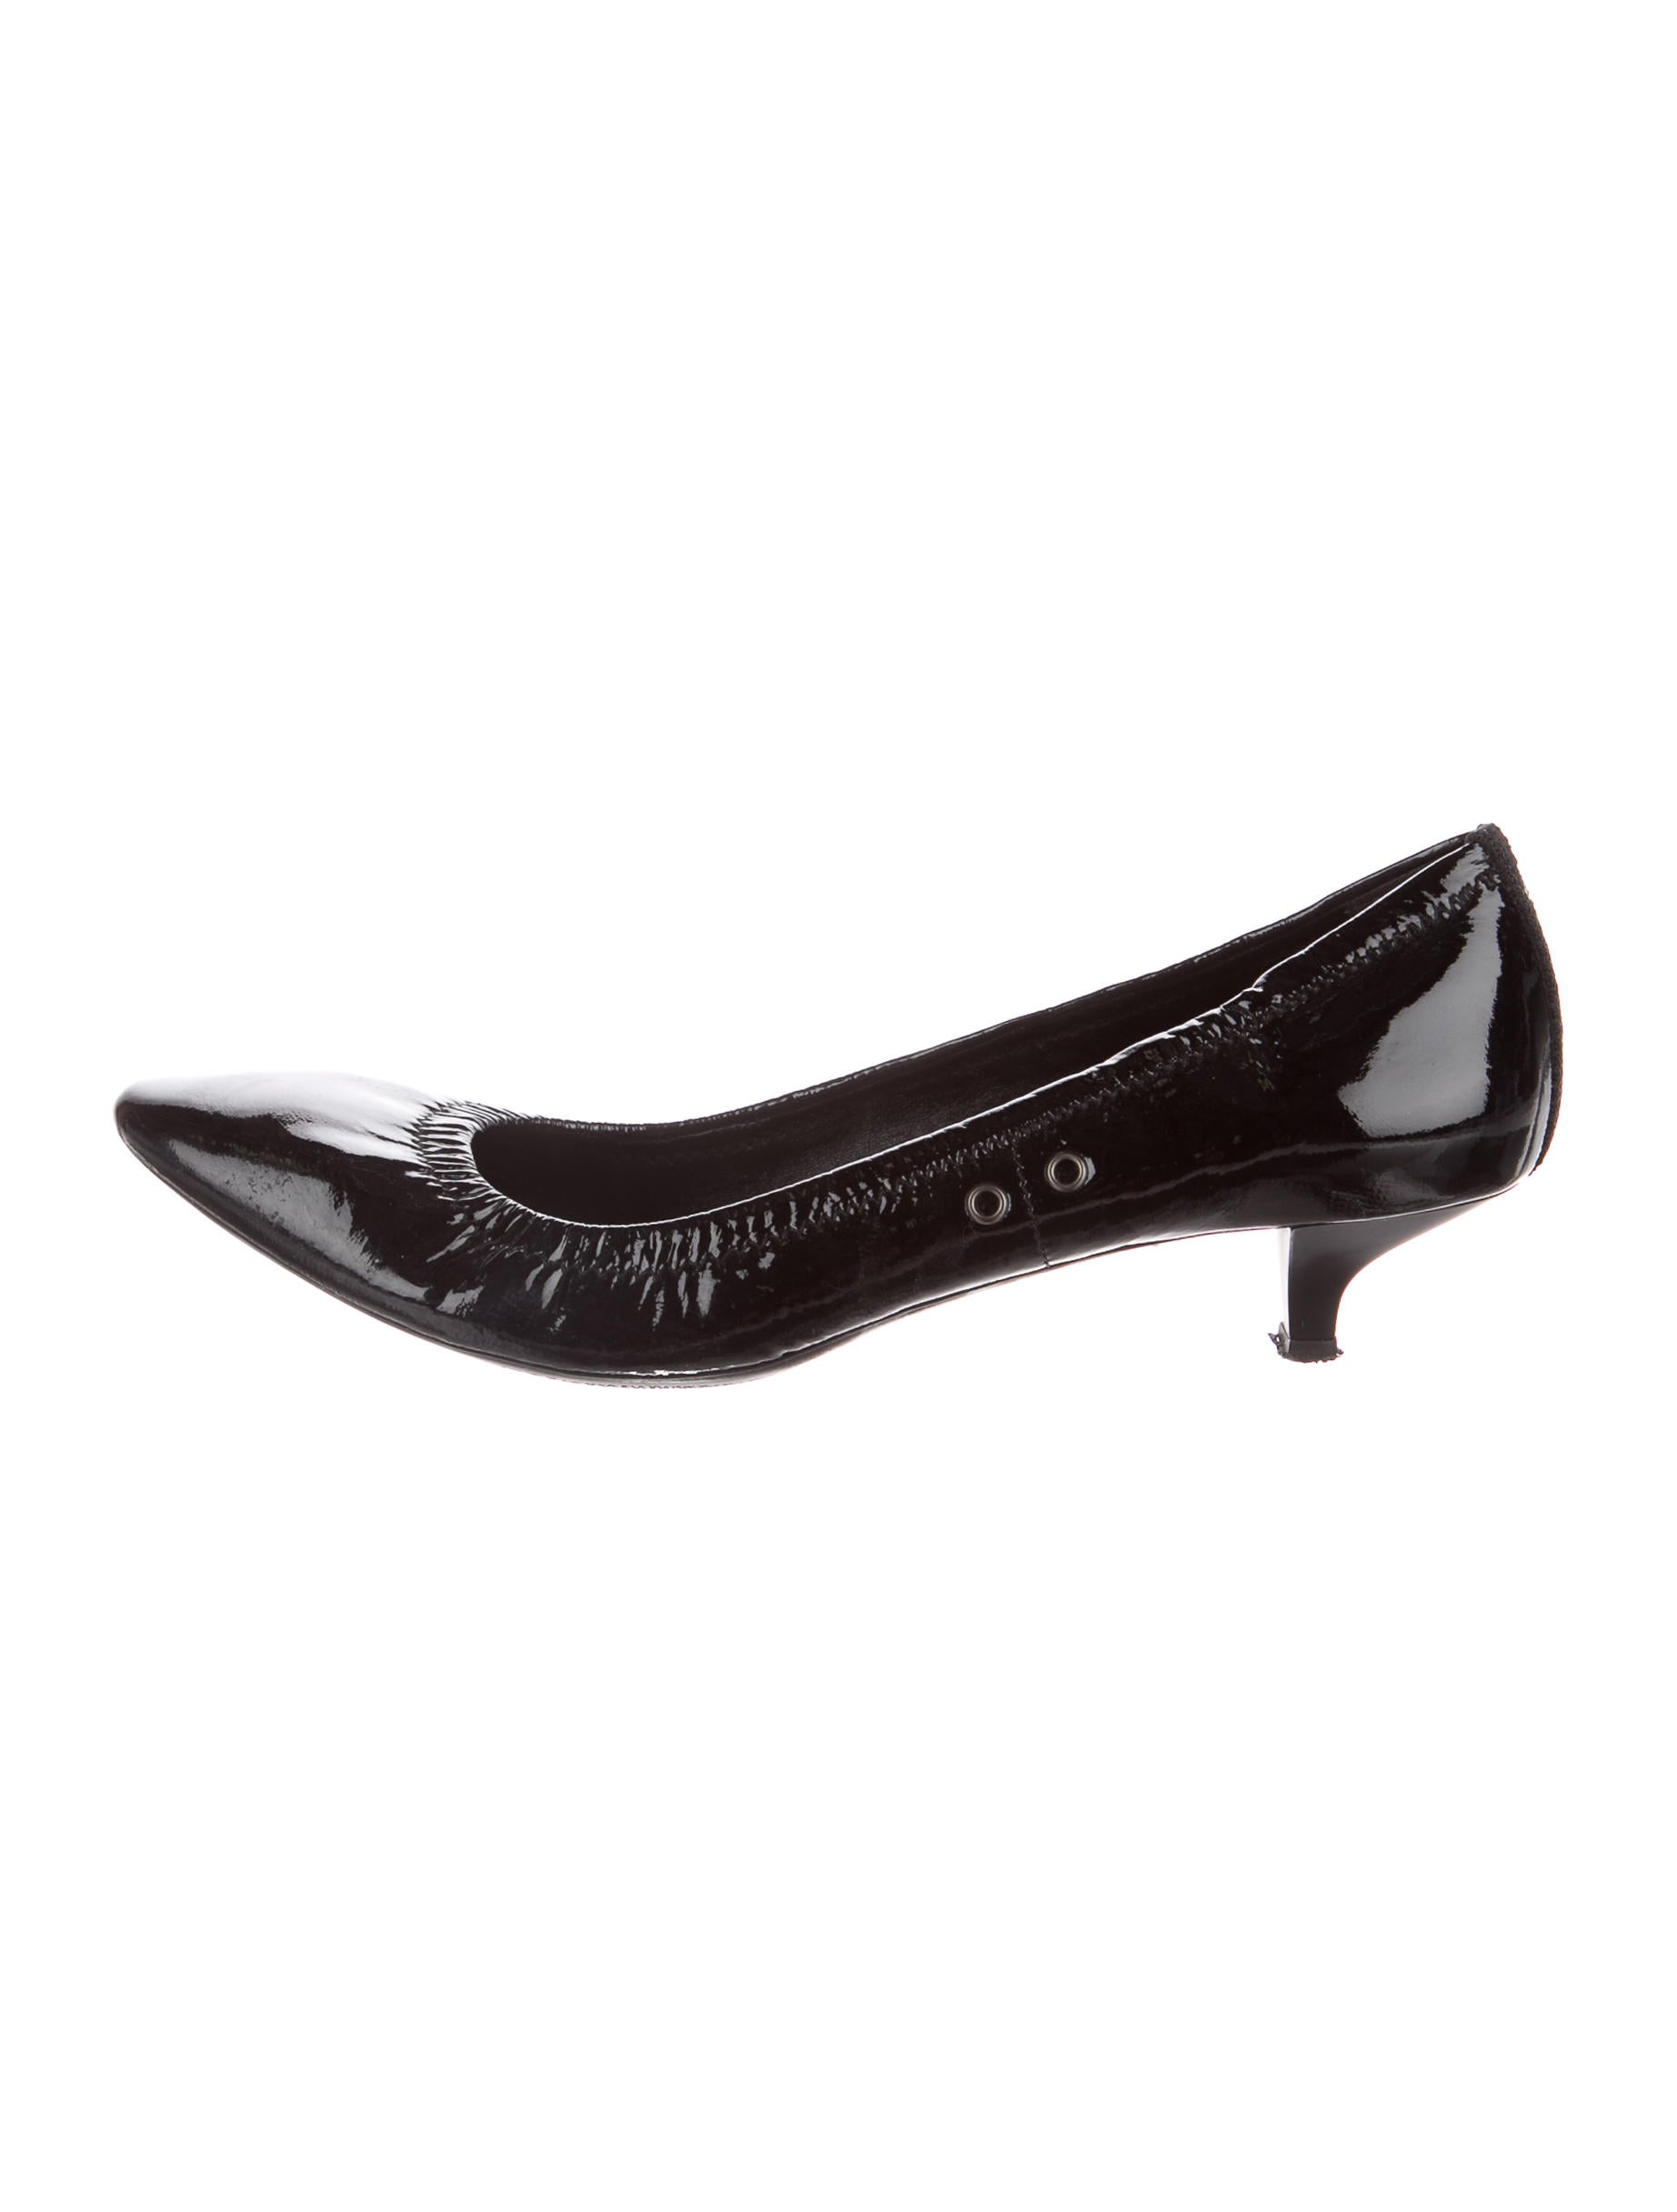 genuine online discount best Prada Sport Patent Leather Round-Toe Pumps outlet low shipping hoIYvZ5P